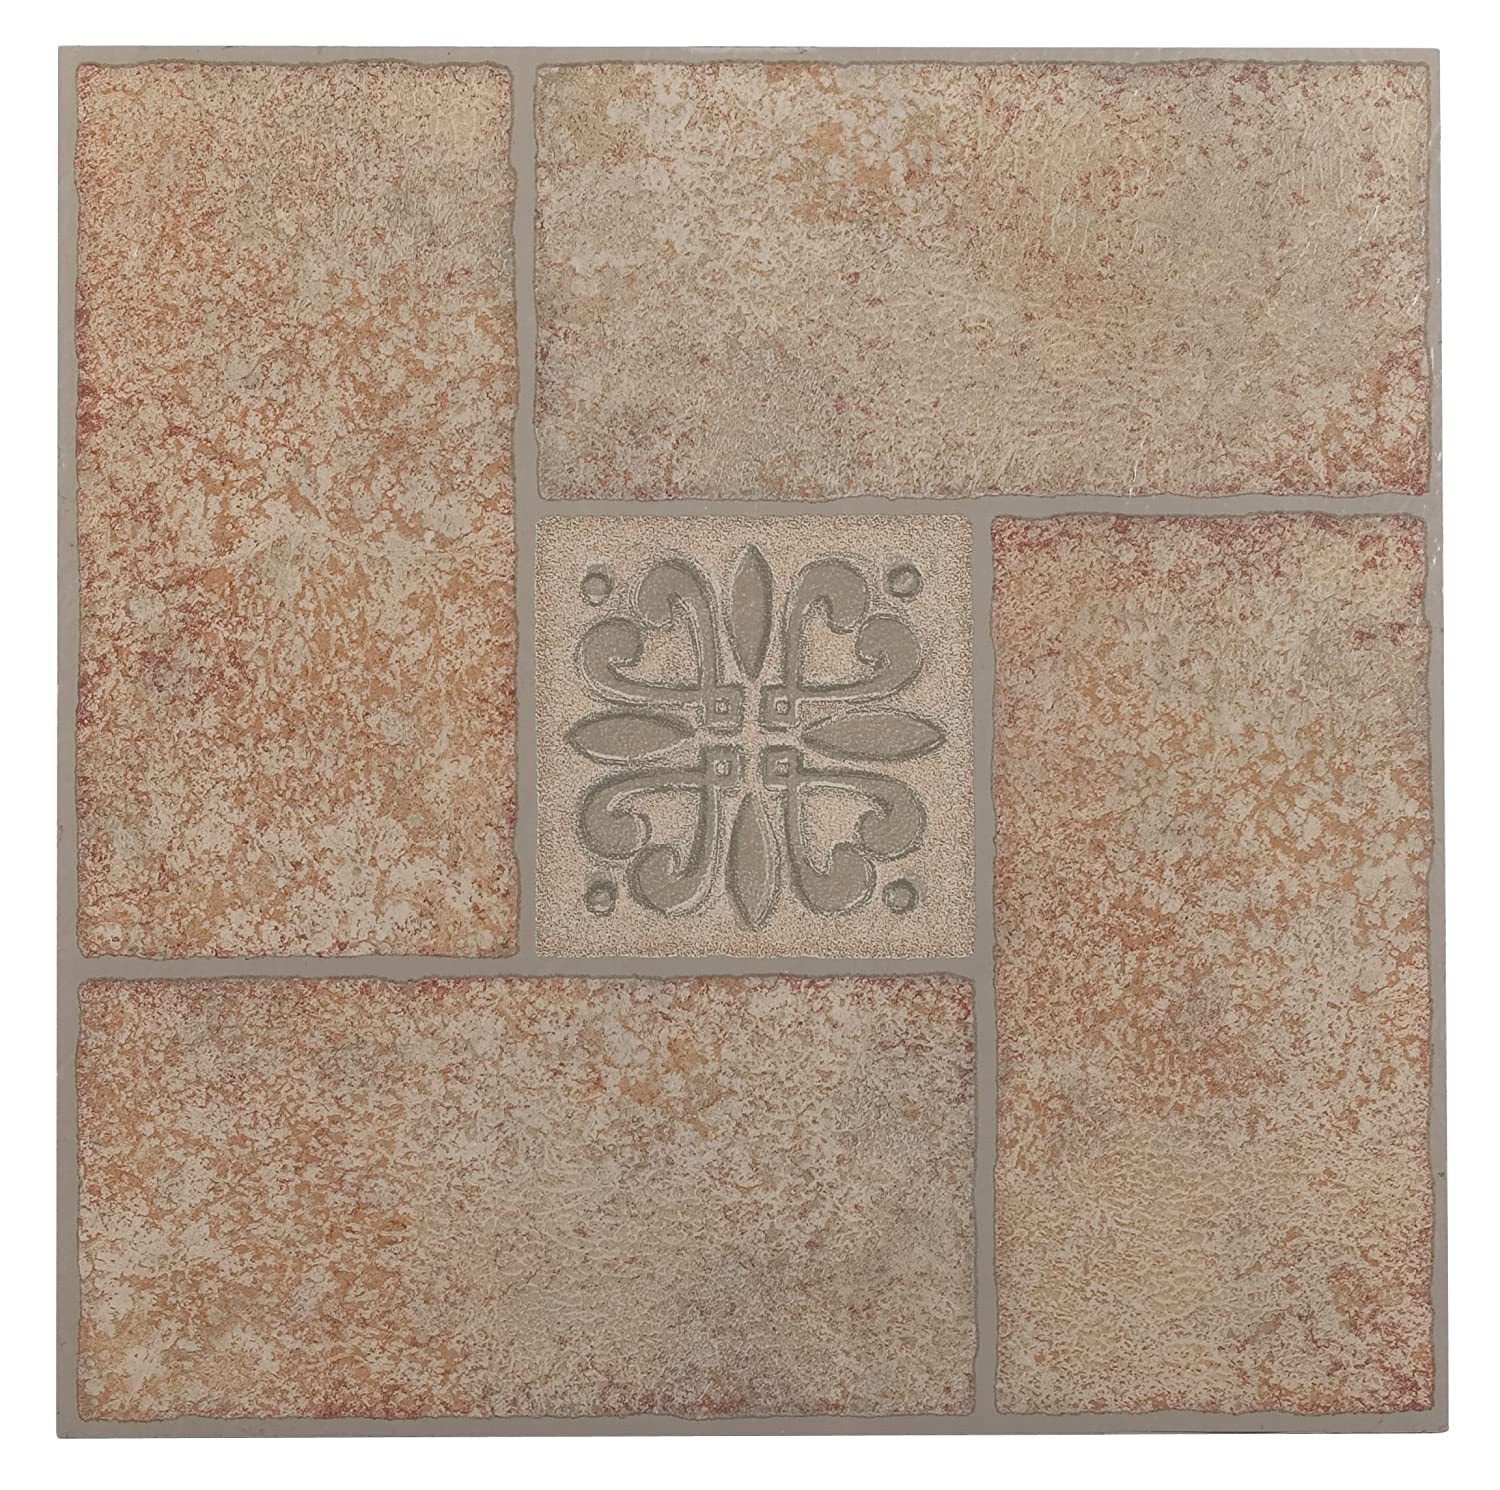 Self adhesive vinyl floor tiles floor l and stick tile flooring achim home furnishings ftvma42120 nexus 12inch vinyl tile marble beige terracotta motif center 20pack vinyl floor coverings amazoncom dailygadgetfo Images